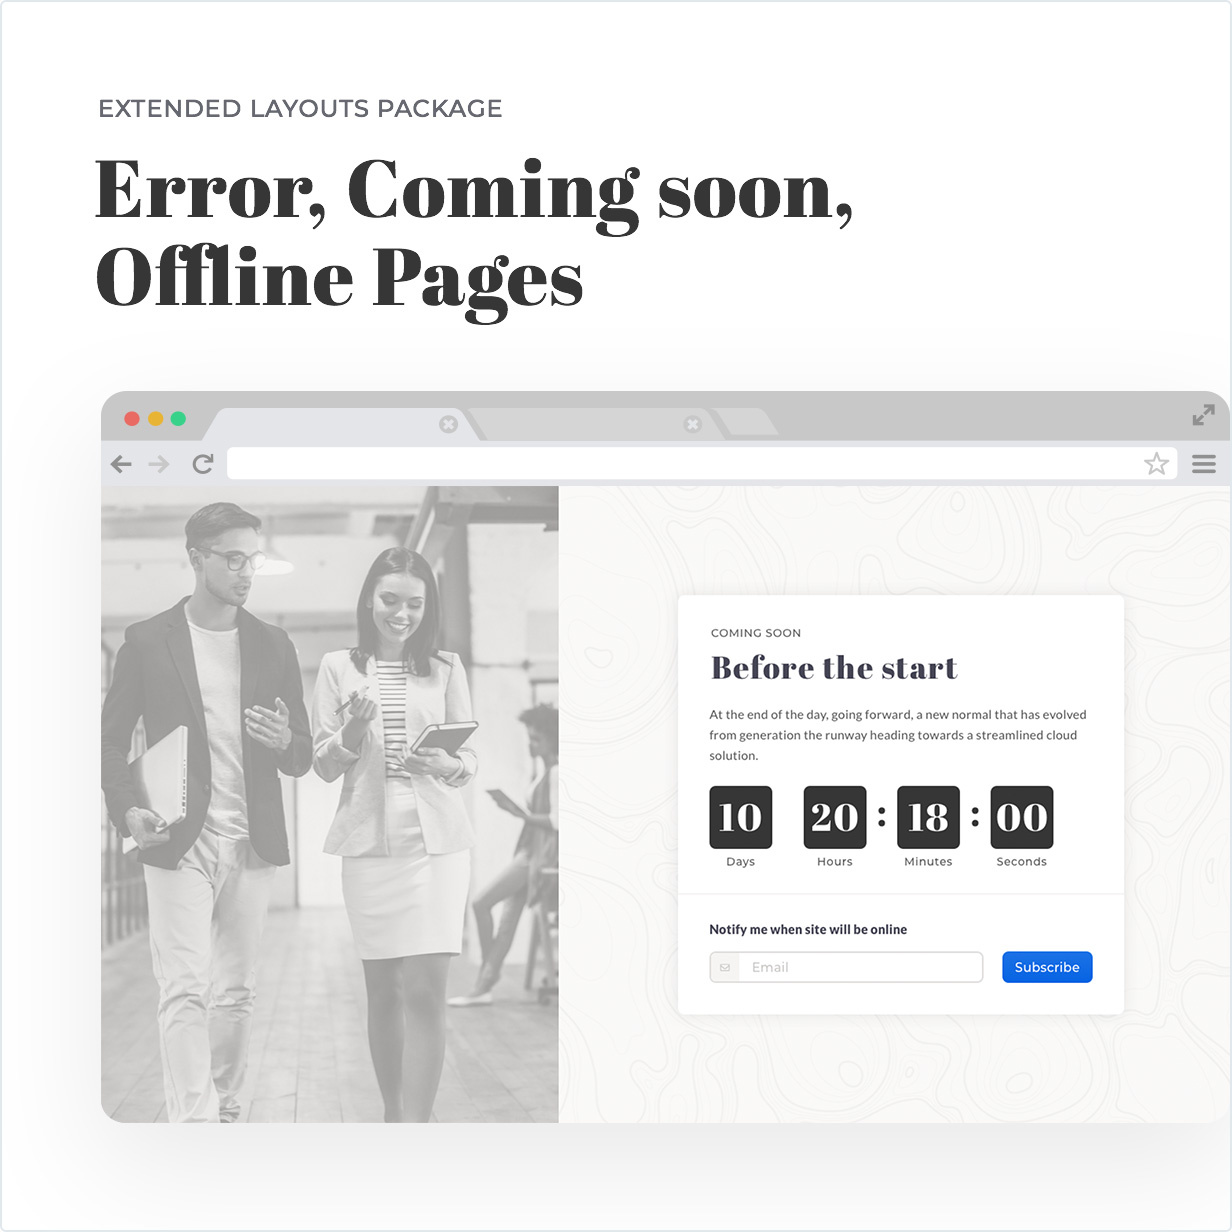 Coming Soon, Error, Offline Page